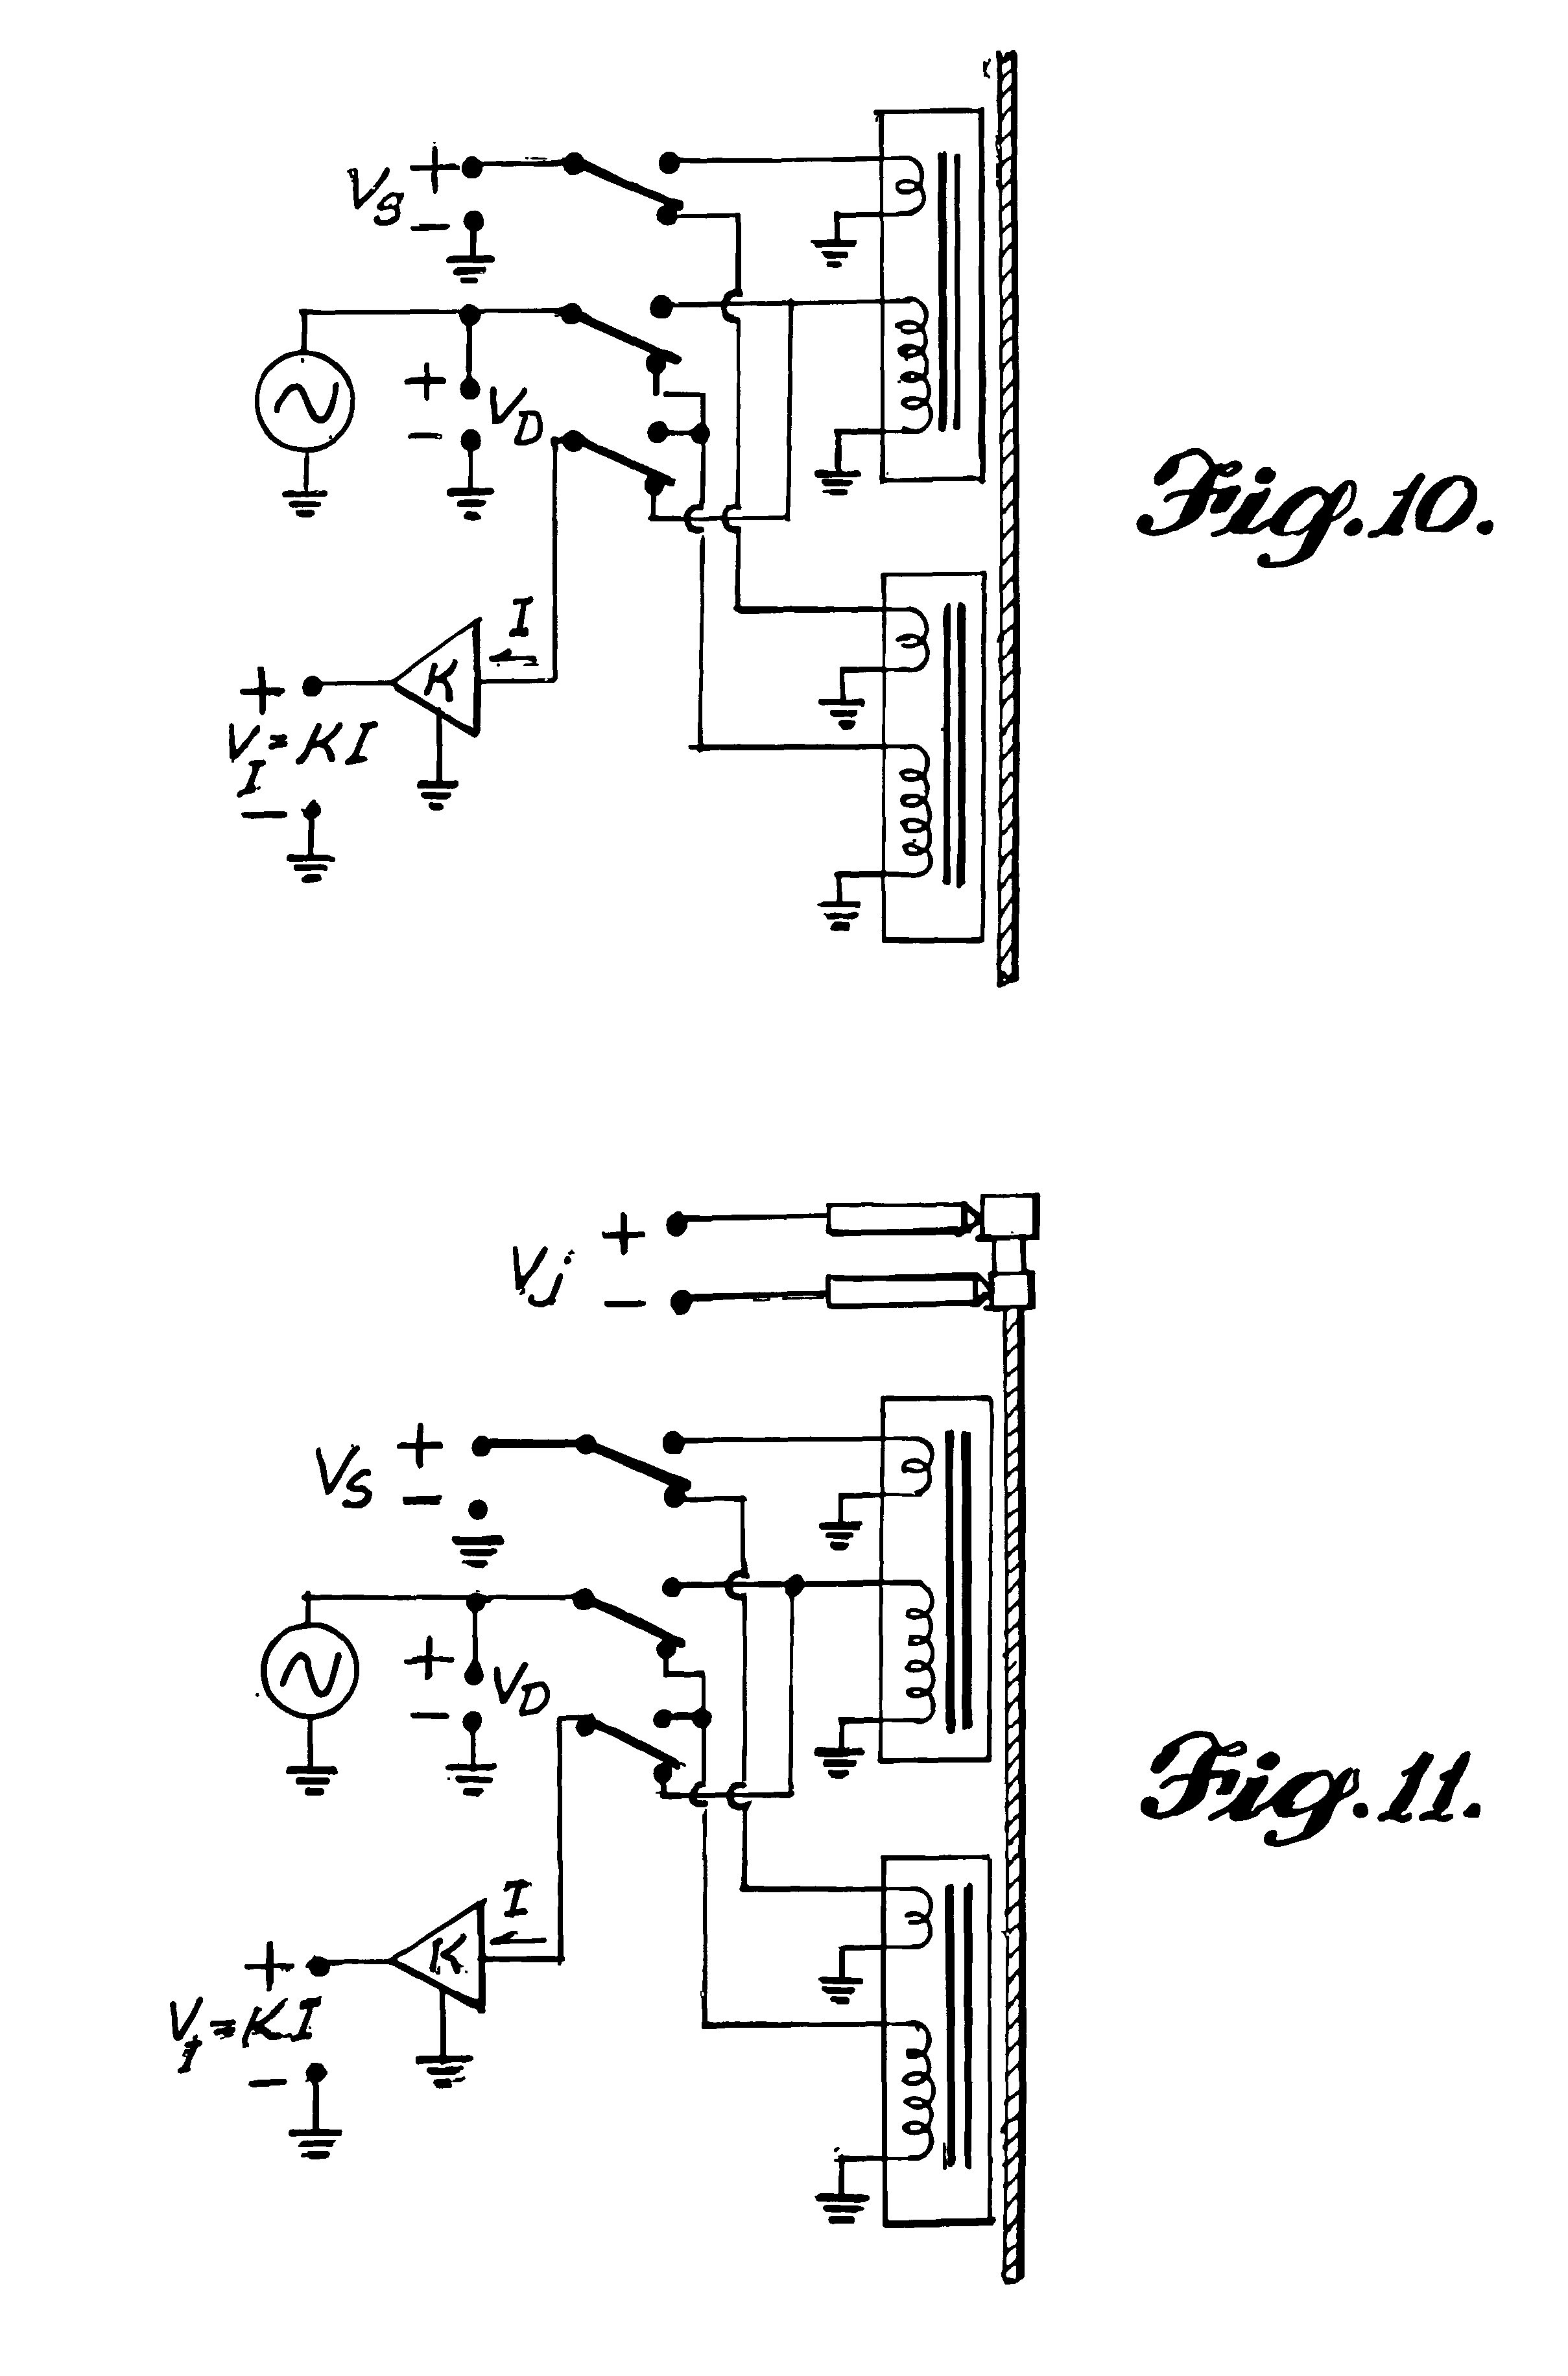 patent us6225810 - loop resistance tester  lrt  for cable shield integrity